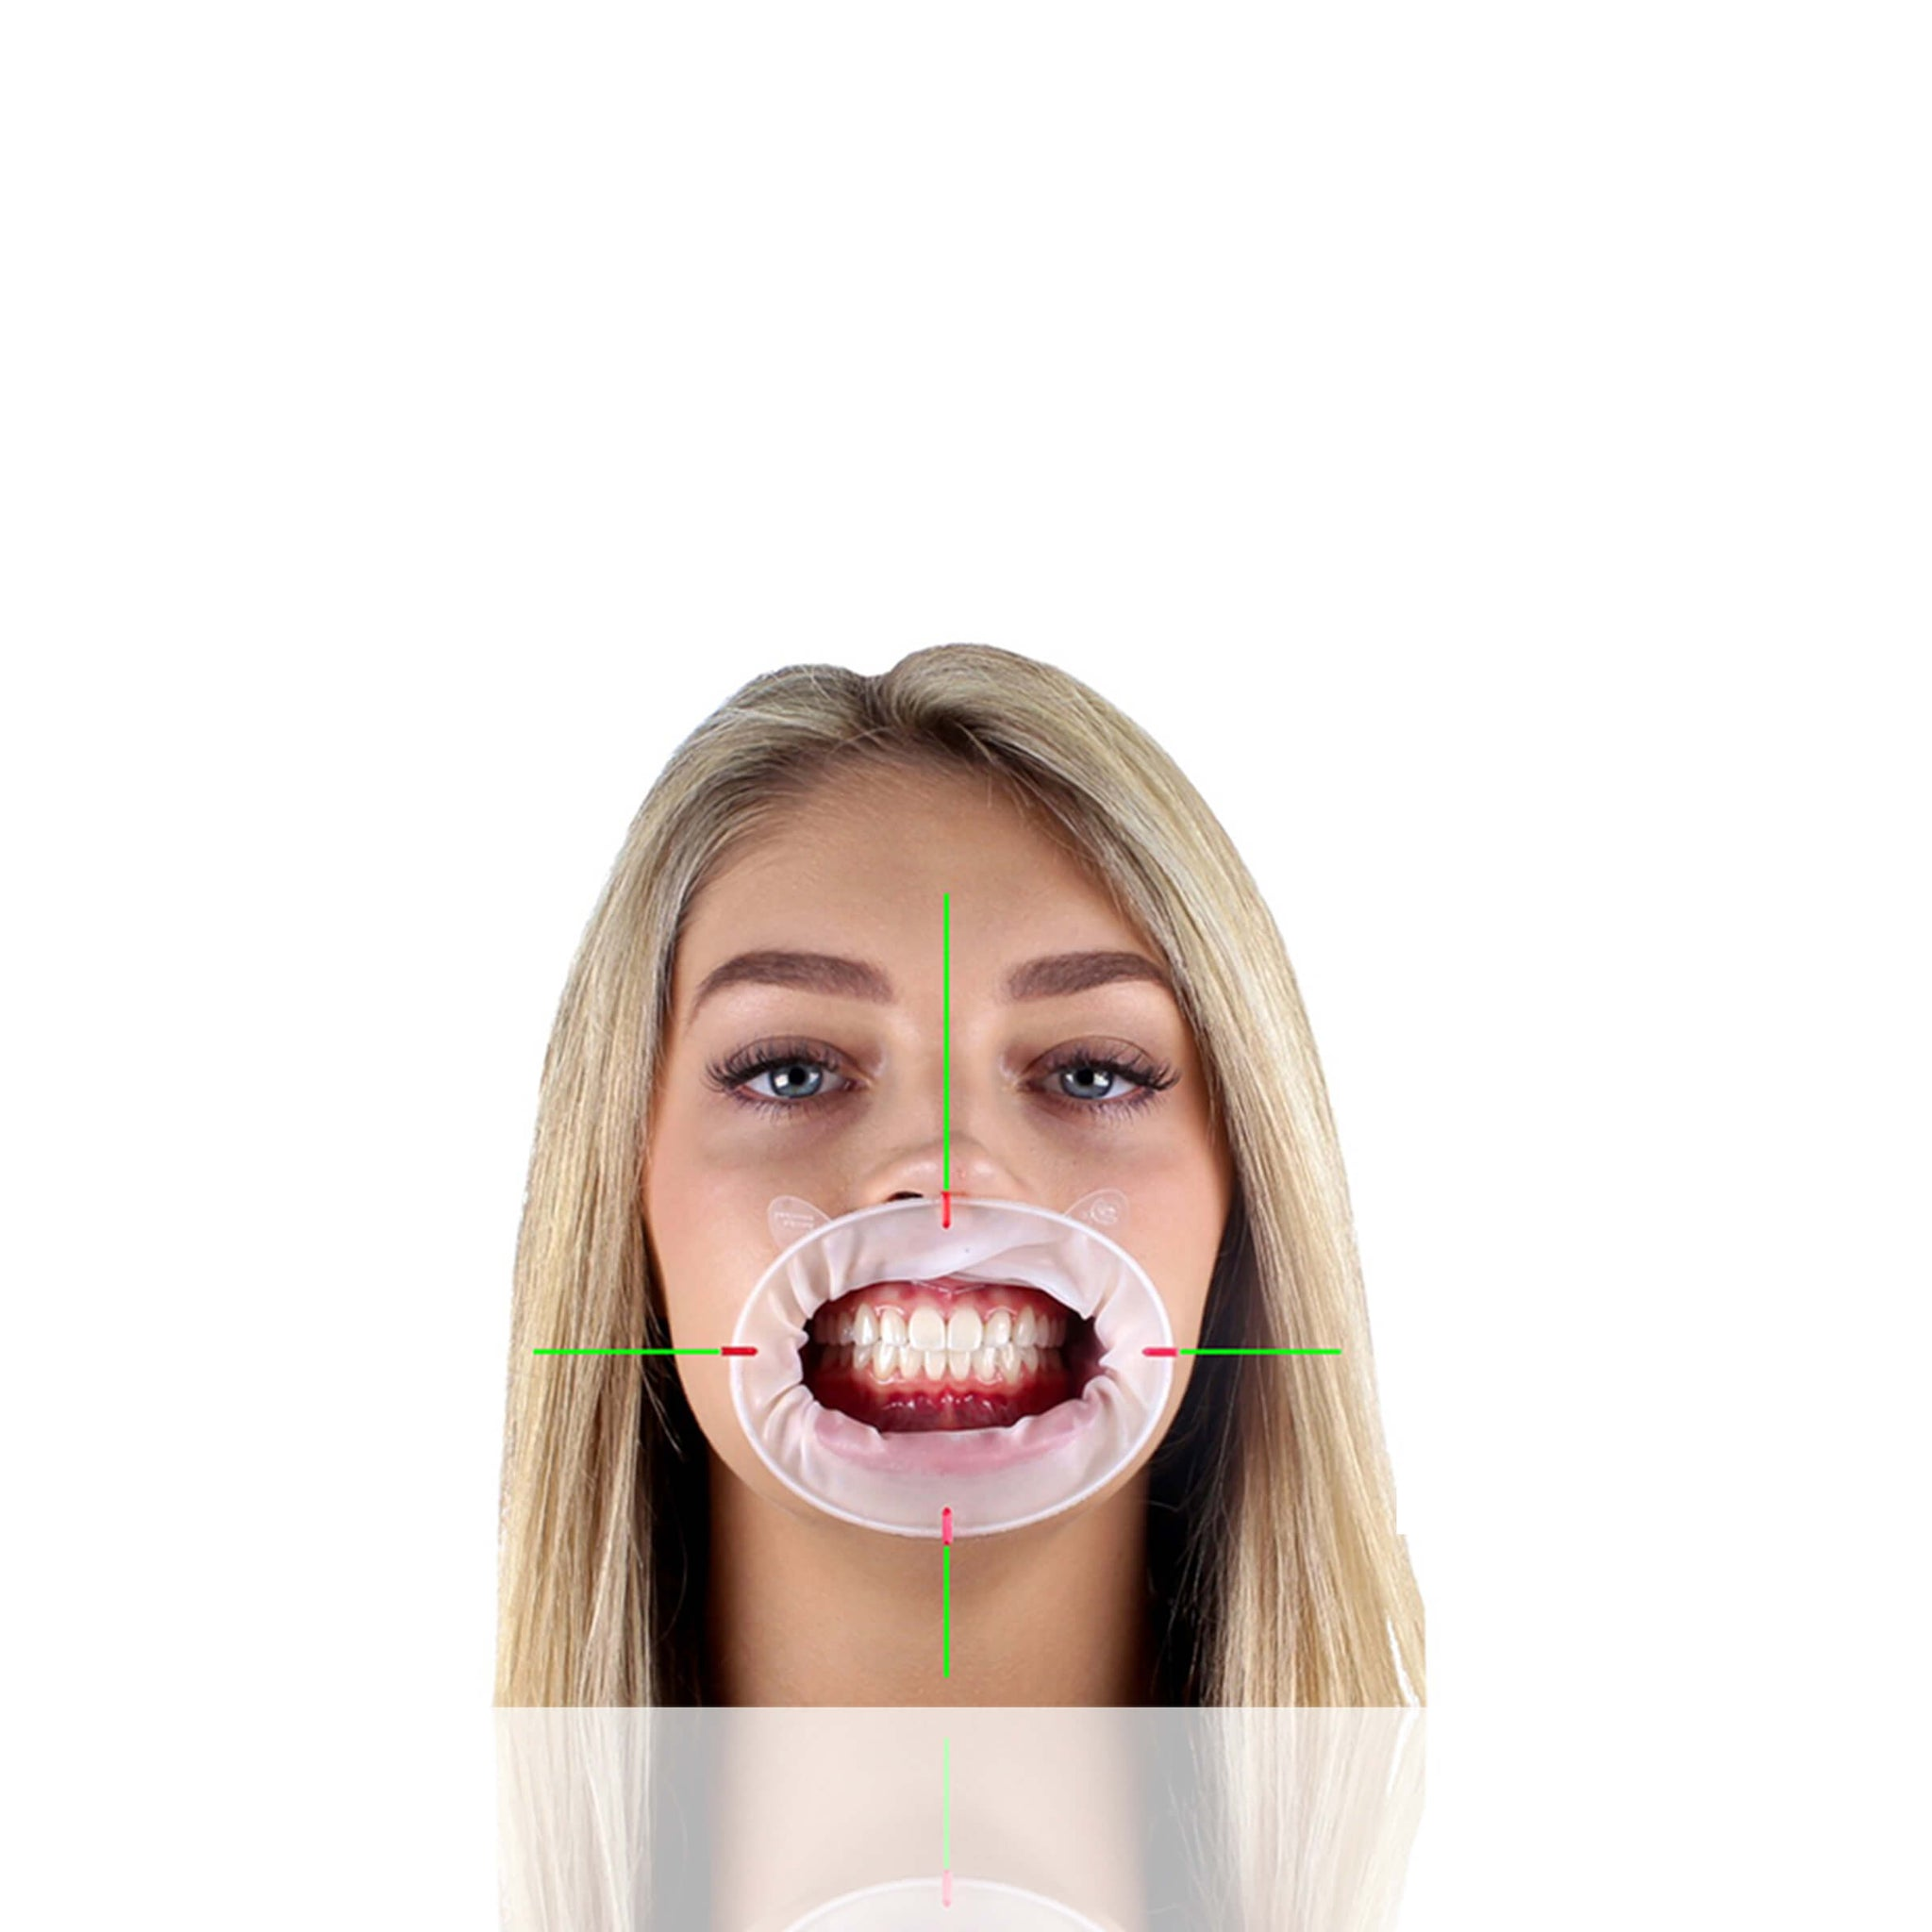 The OneBite System allows the doctor to take one accurate record. This is  compared to the 3 records usually taken with benda brushes or q-tips which results more remakes. Dental aesthetics is built into the foundation of OneBite.